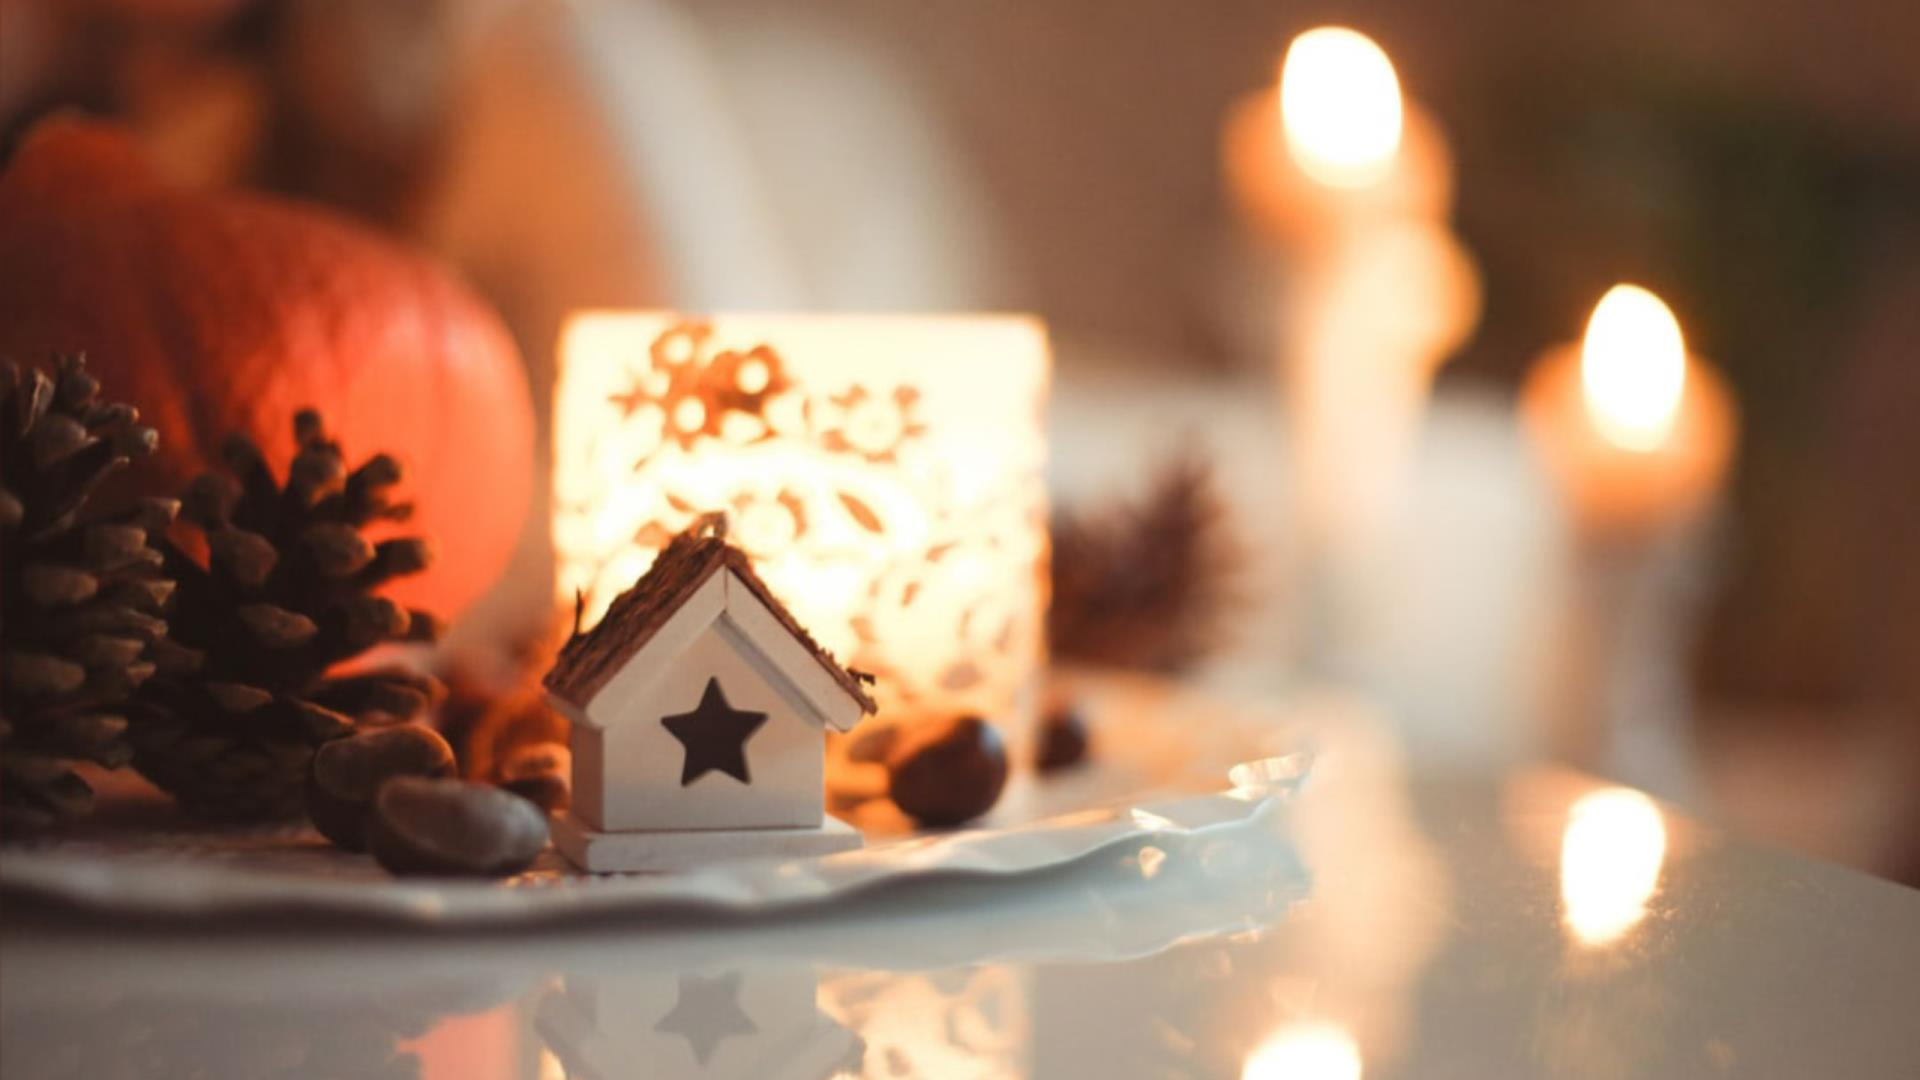 Pinecone pumkin candles on a plate with a small decravite wooden house for the holidays.